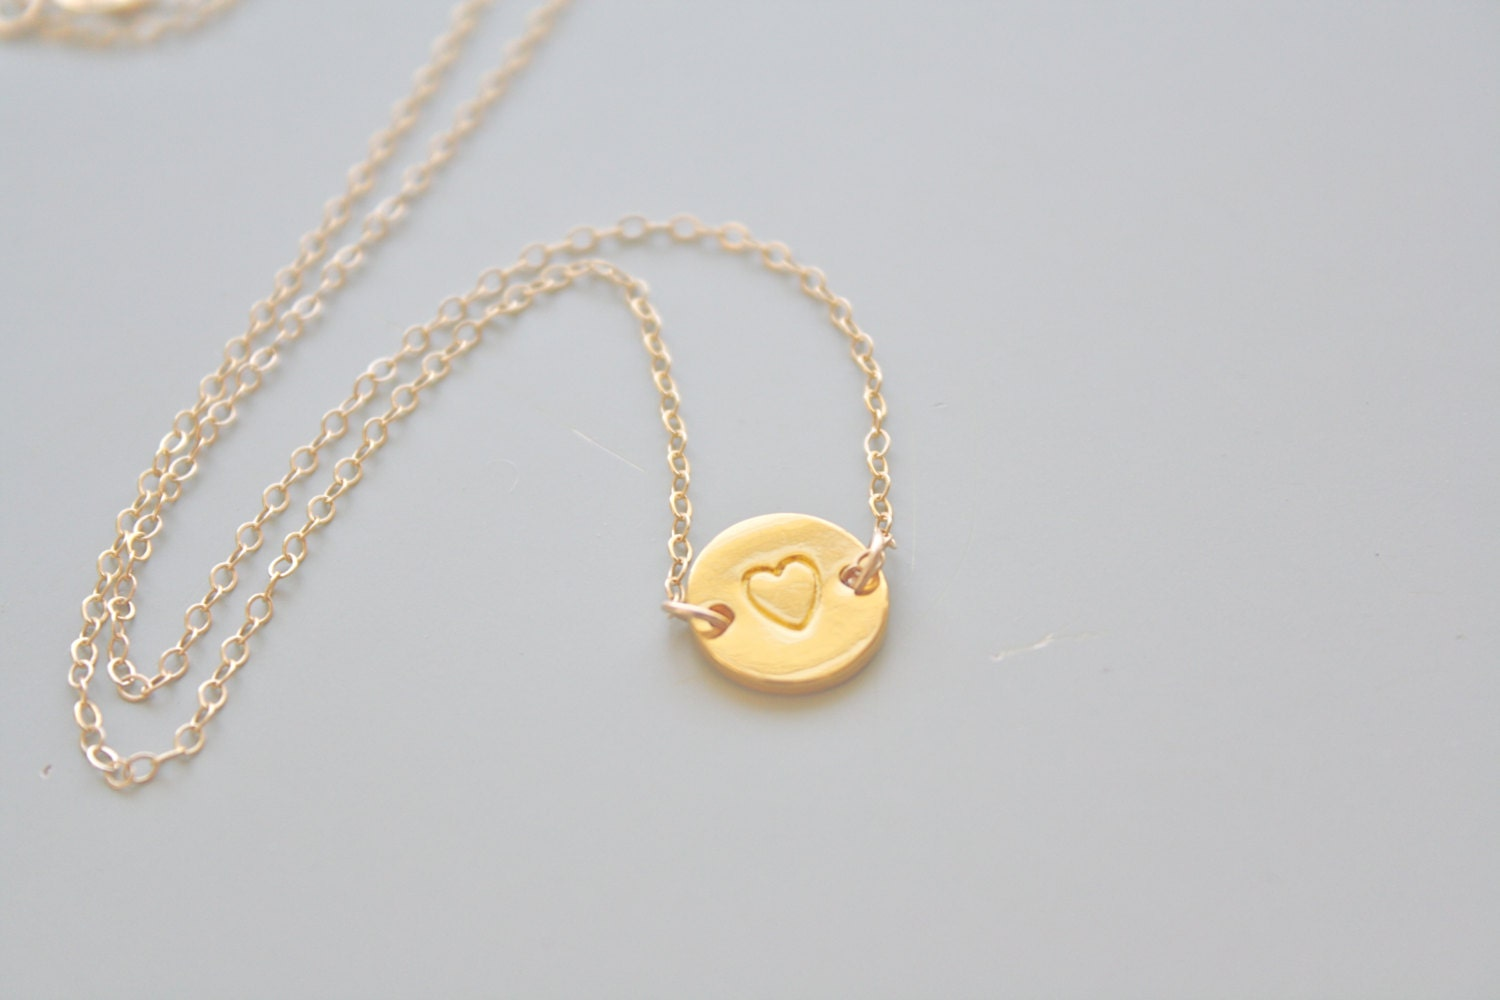 gold necklace necklace simple necklace by avahopedesigns